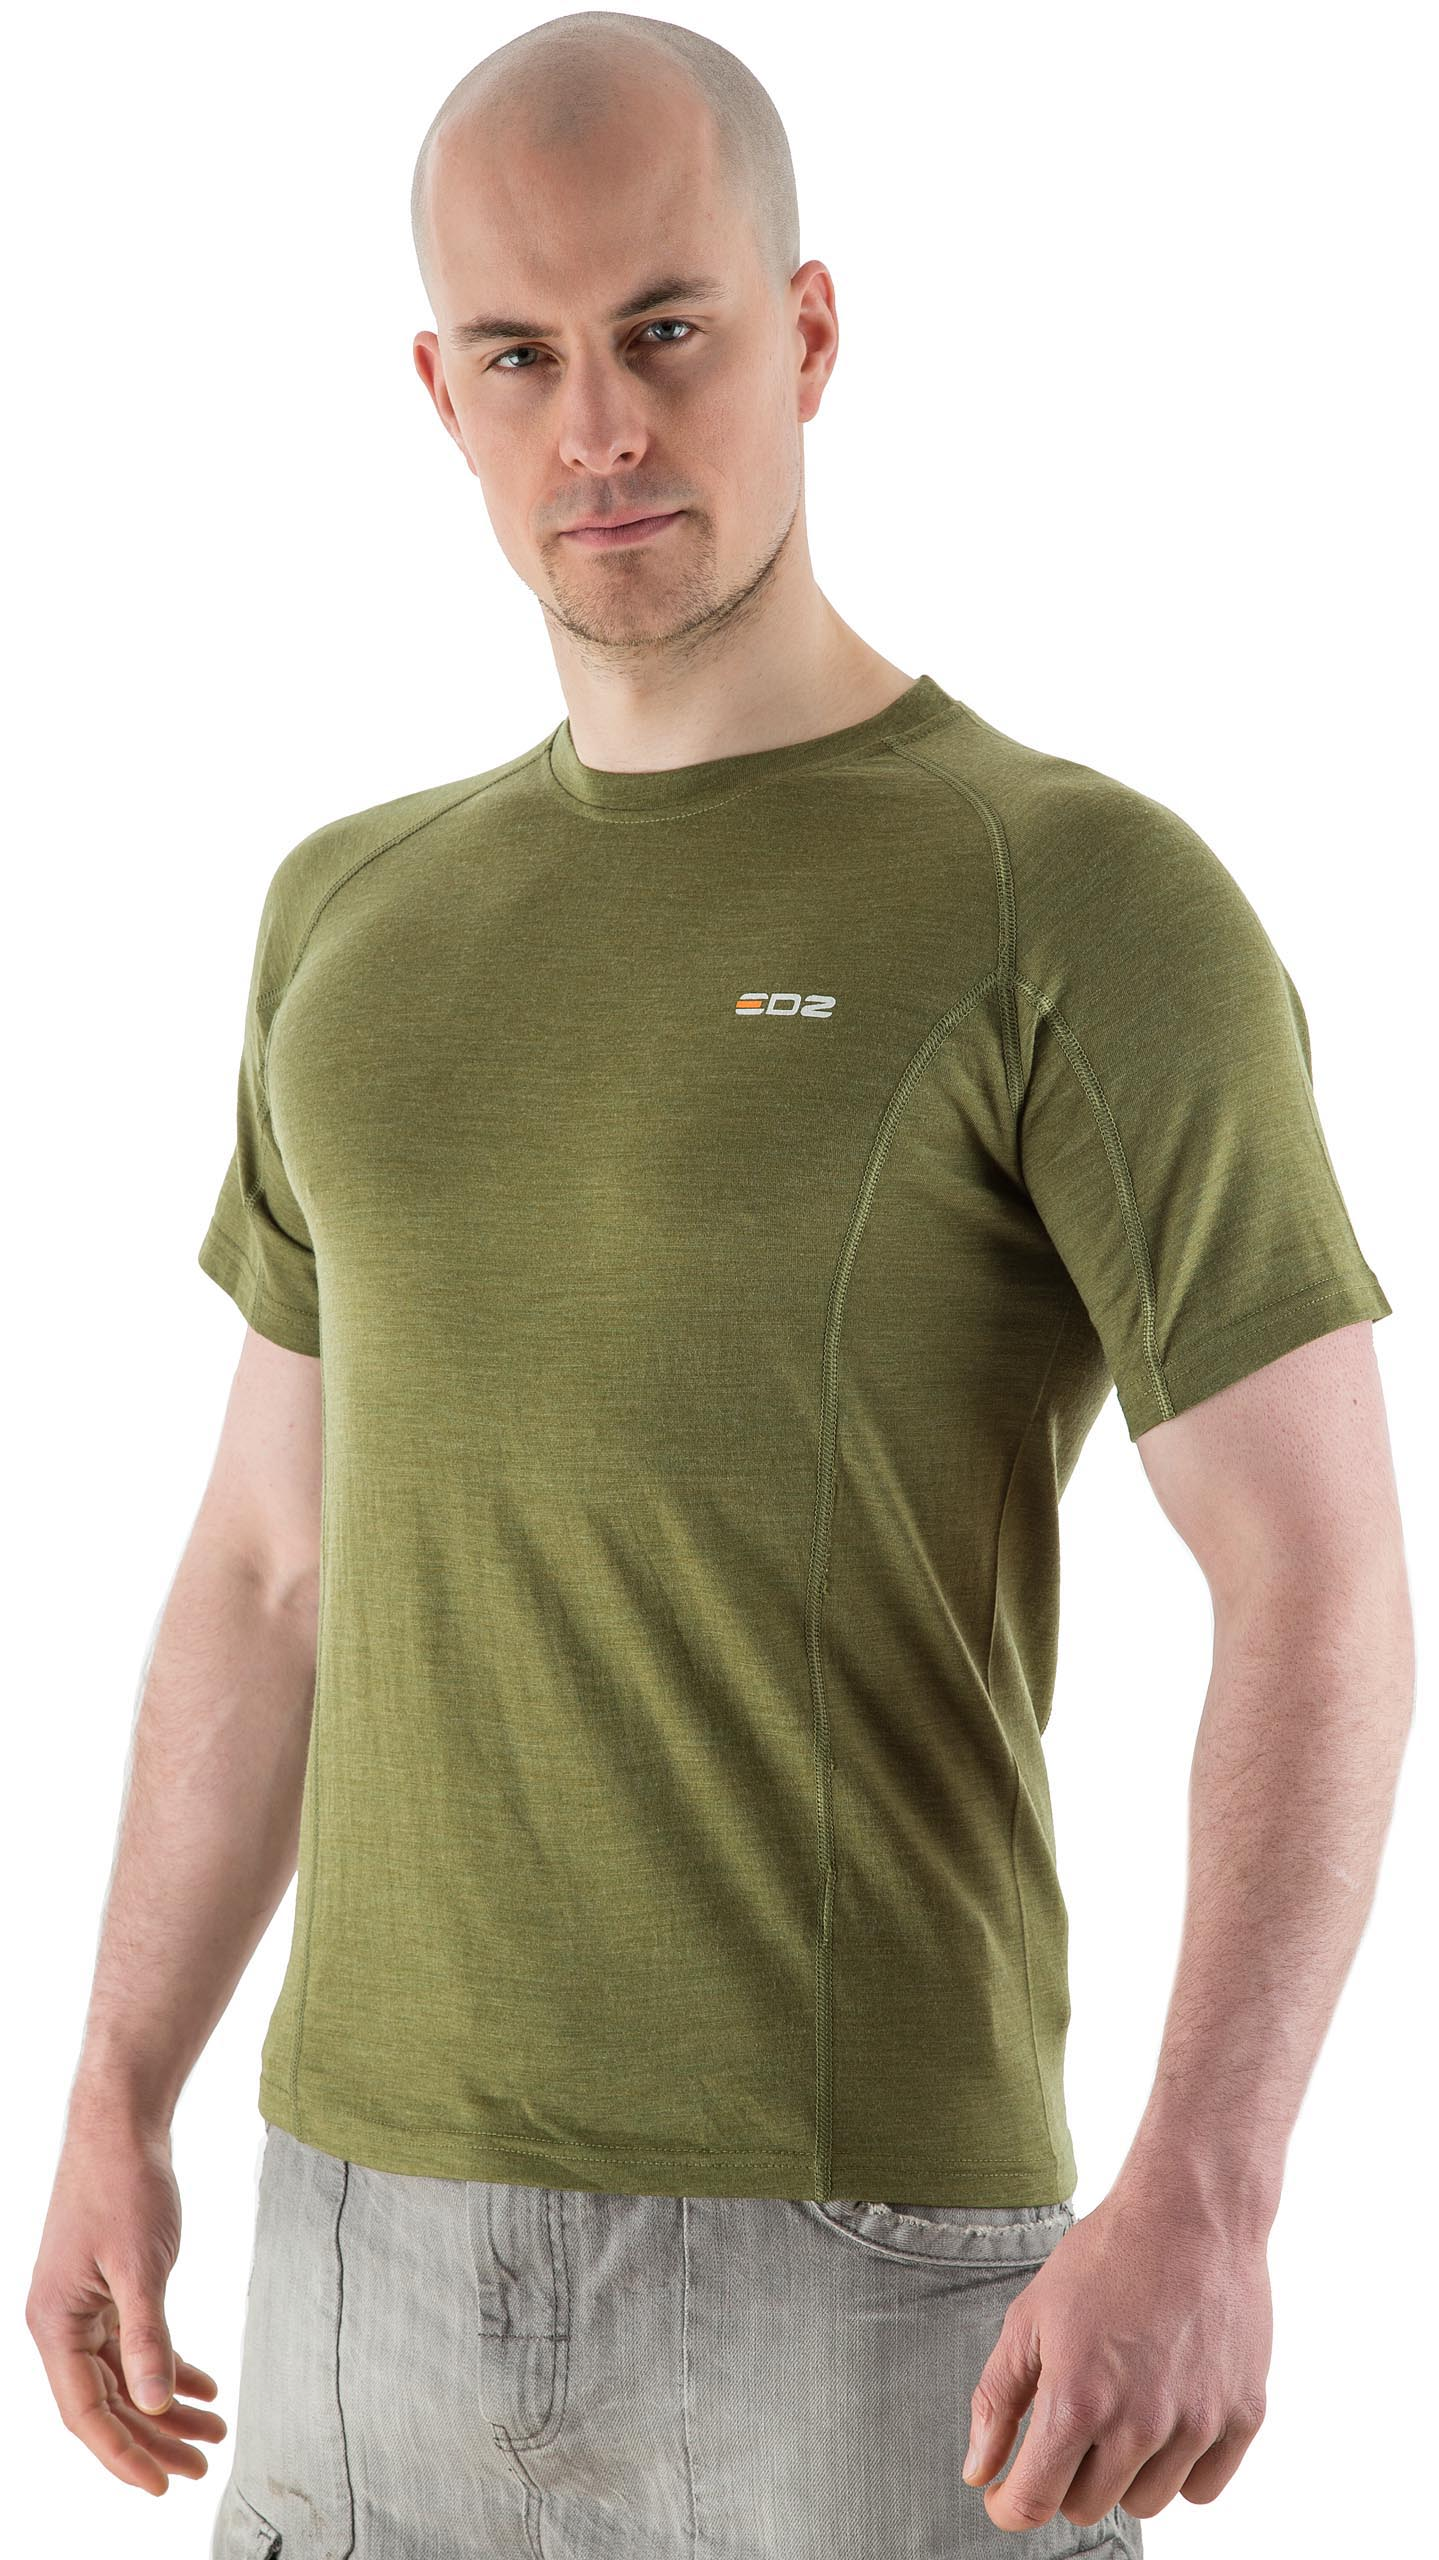 edz 200g men 39 s merino wool base layer t shirt olive green. Black Bedroom Furniture Sets. Home Design Ideas